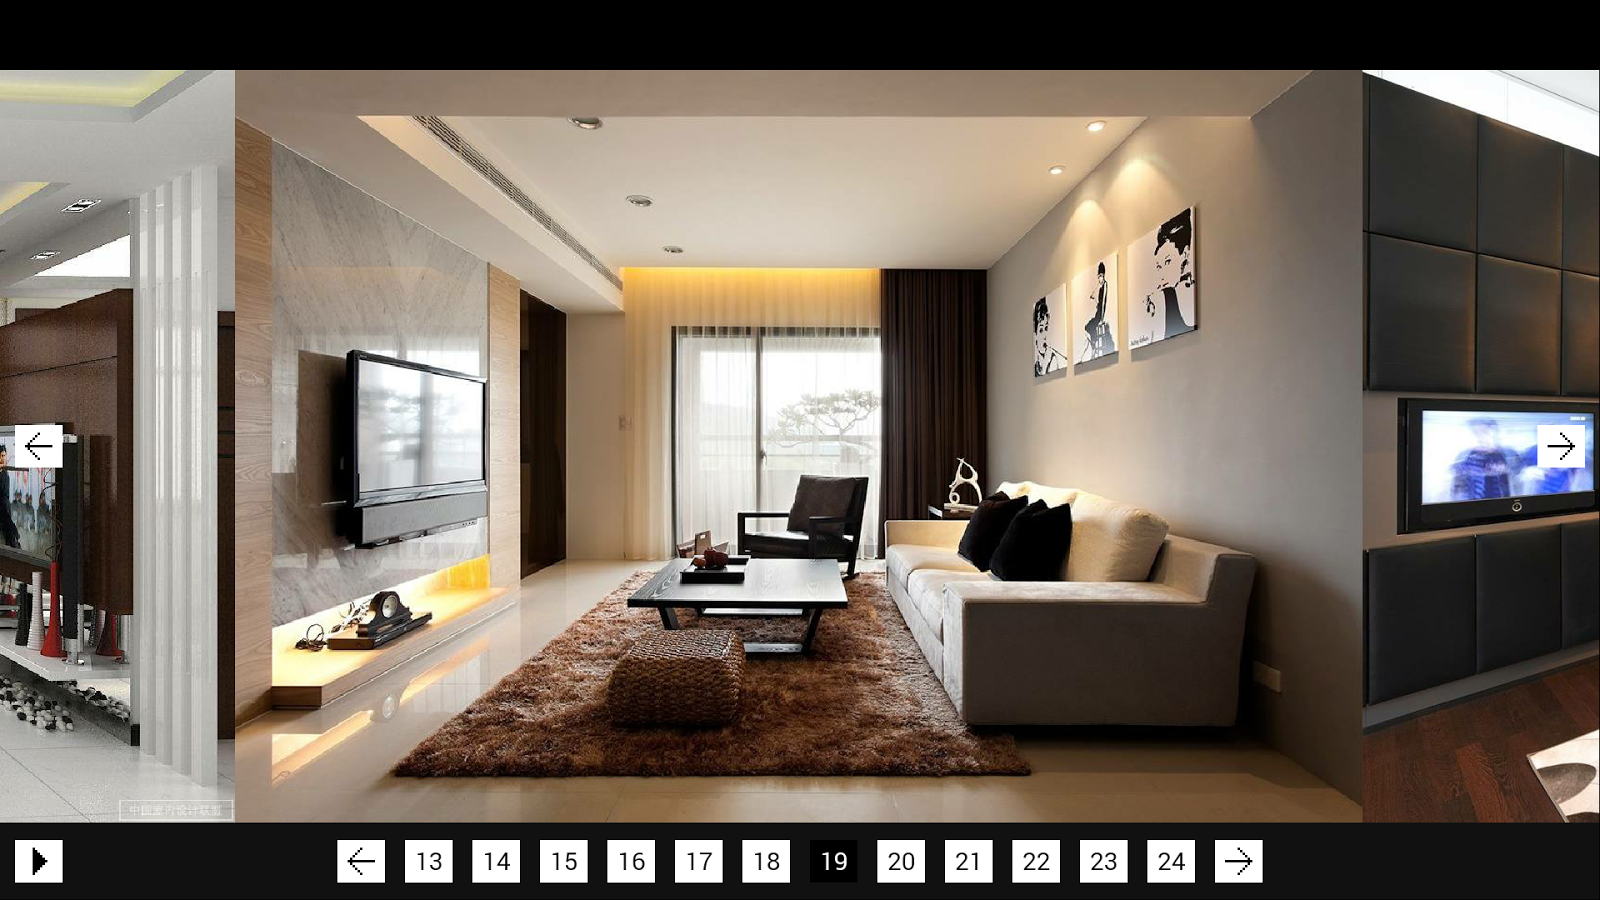 Home interior design android apps on google play for Complete interior design of a house